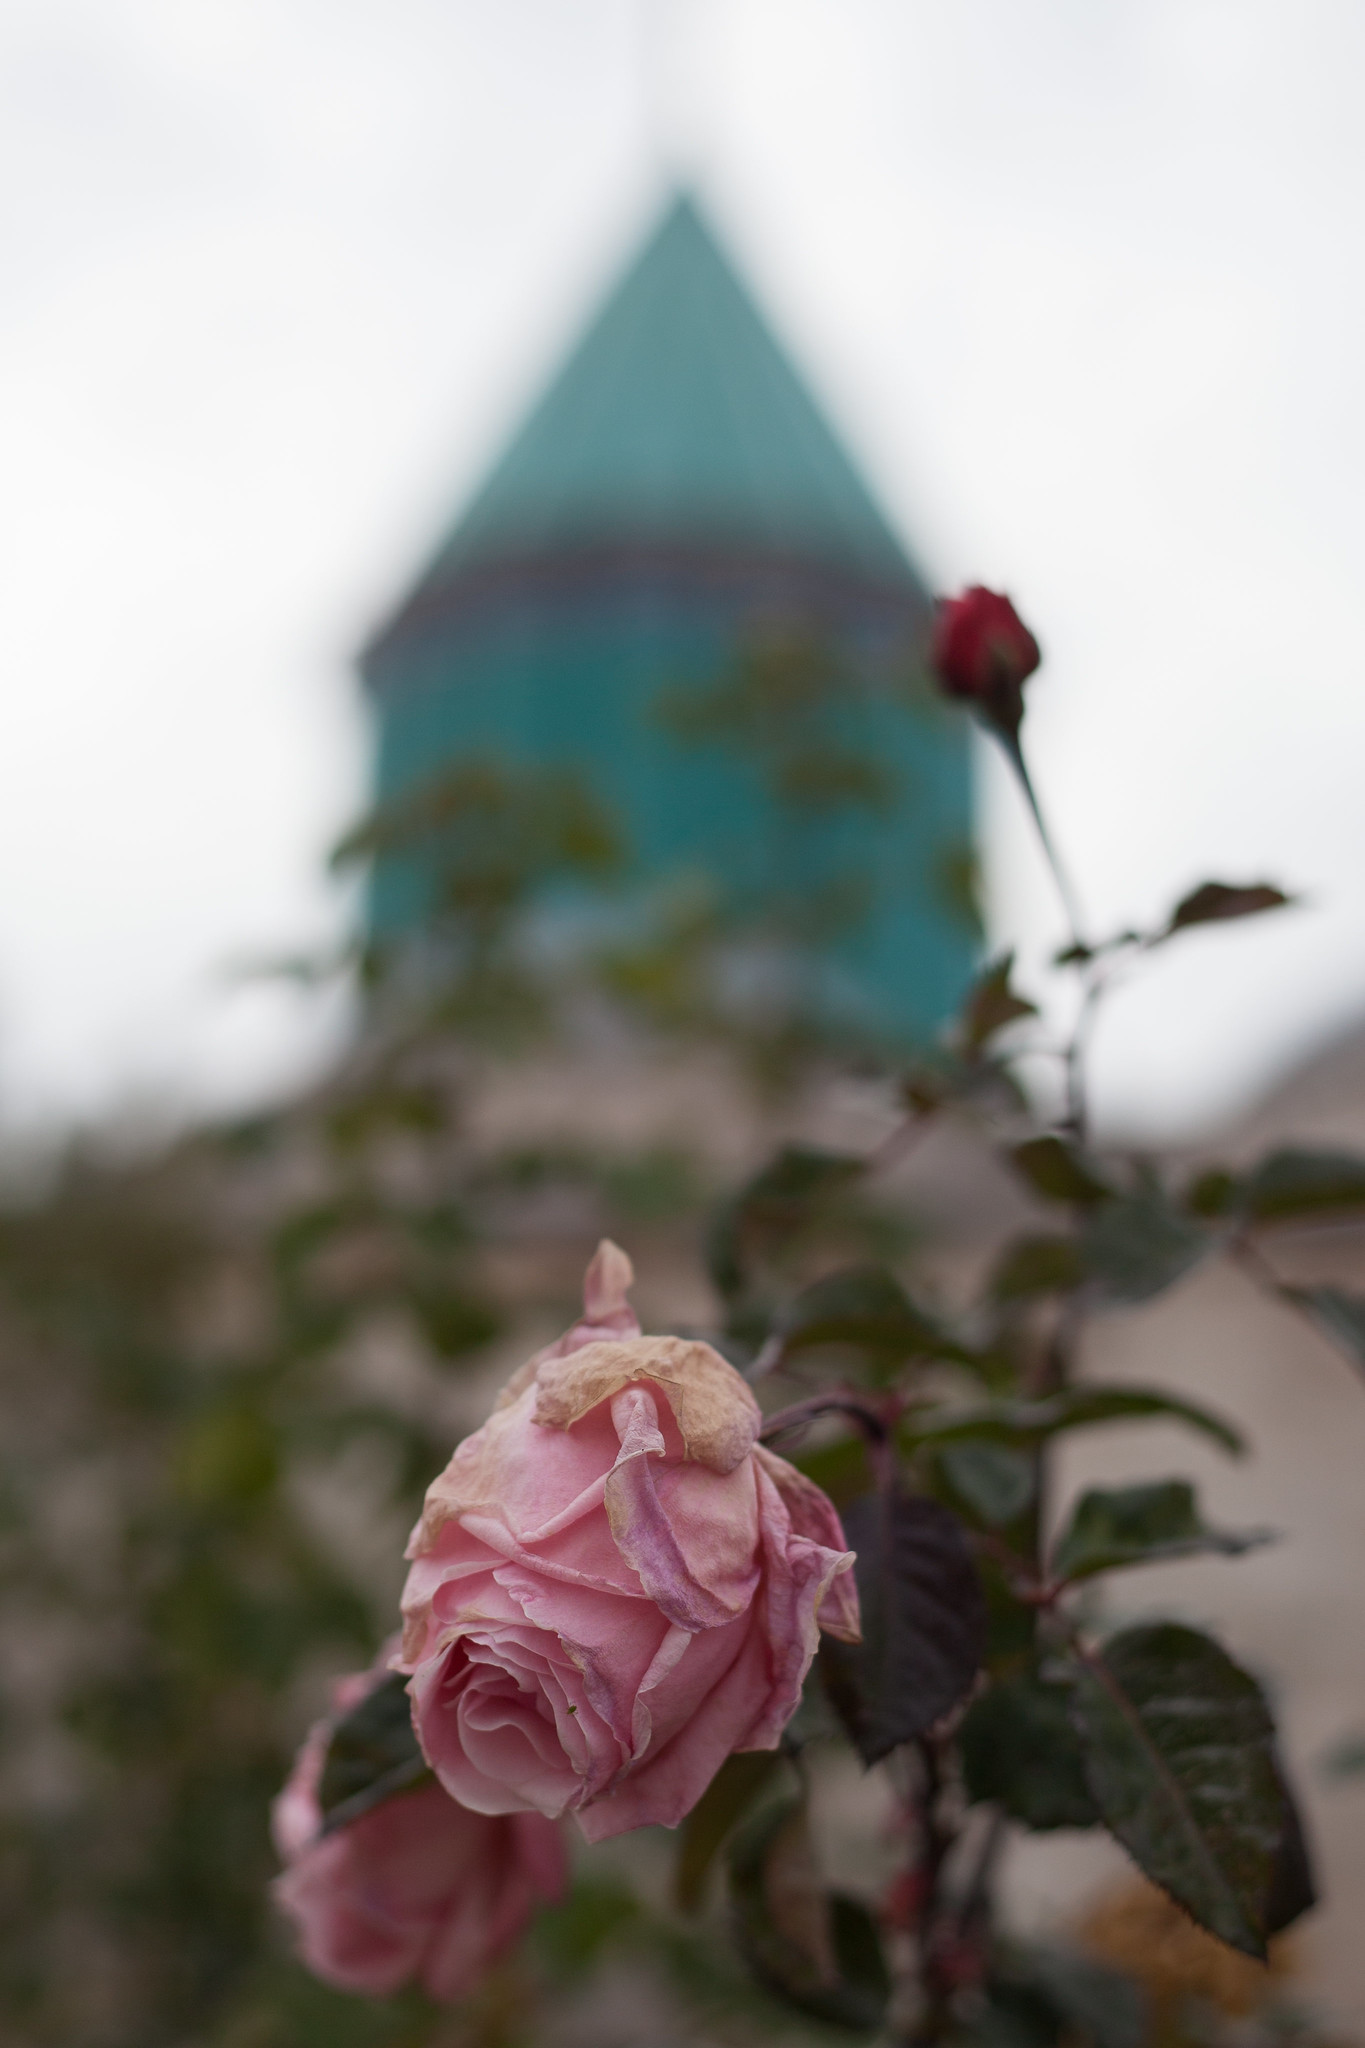 Roses in the garden round Rumi's grave